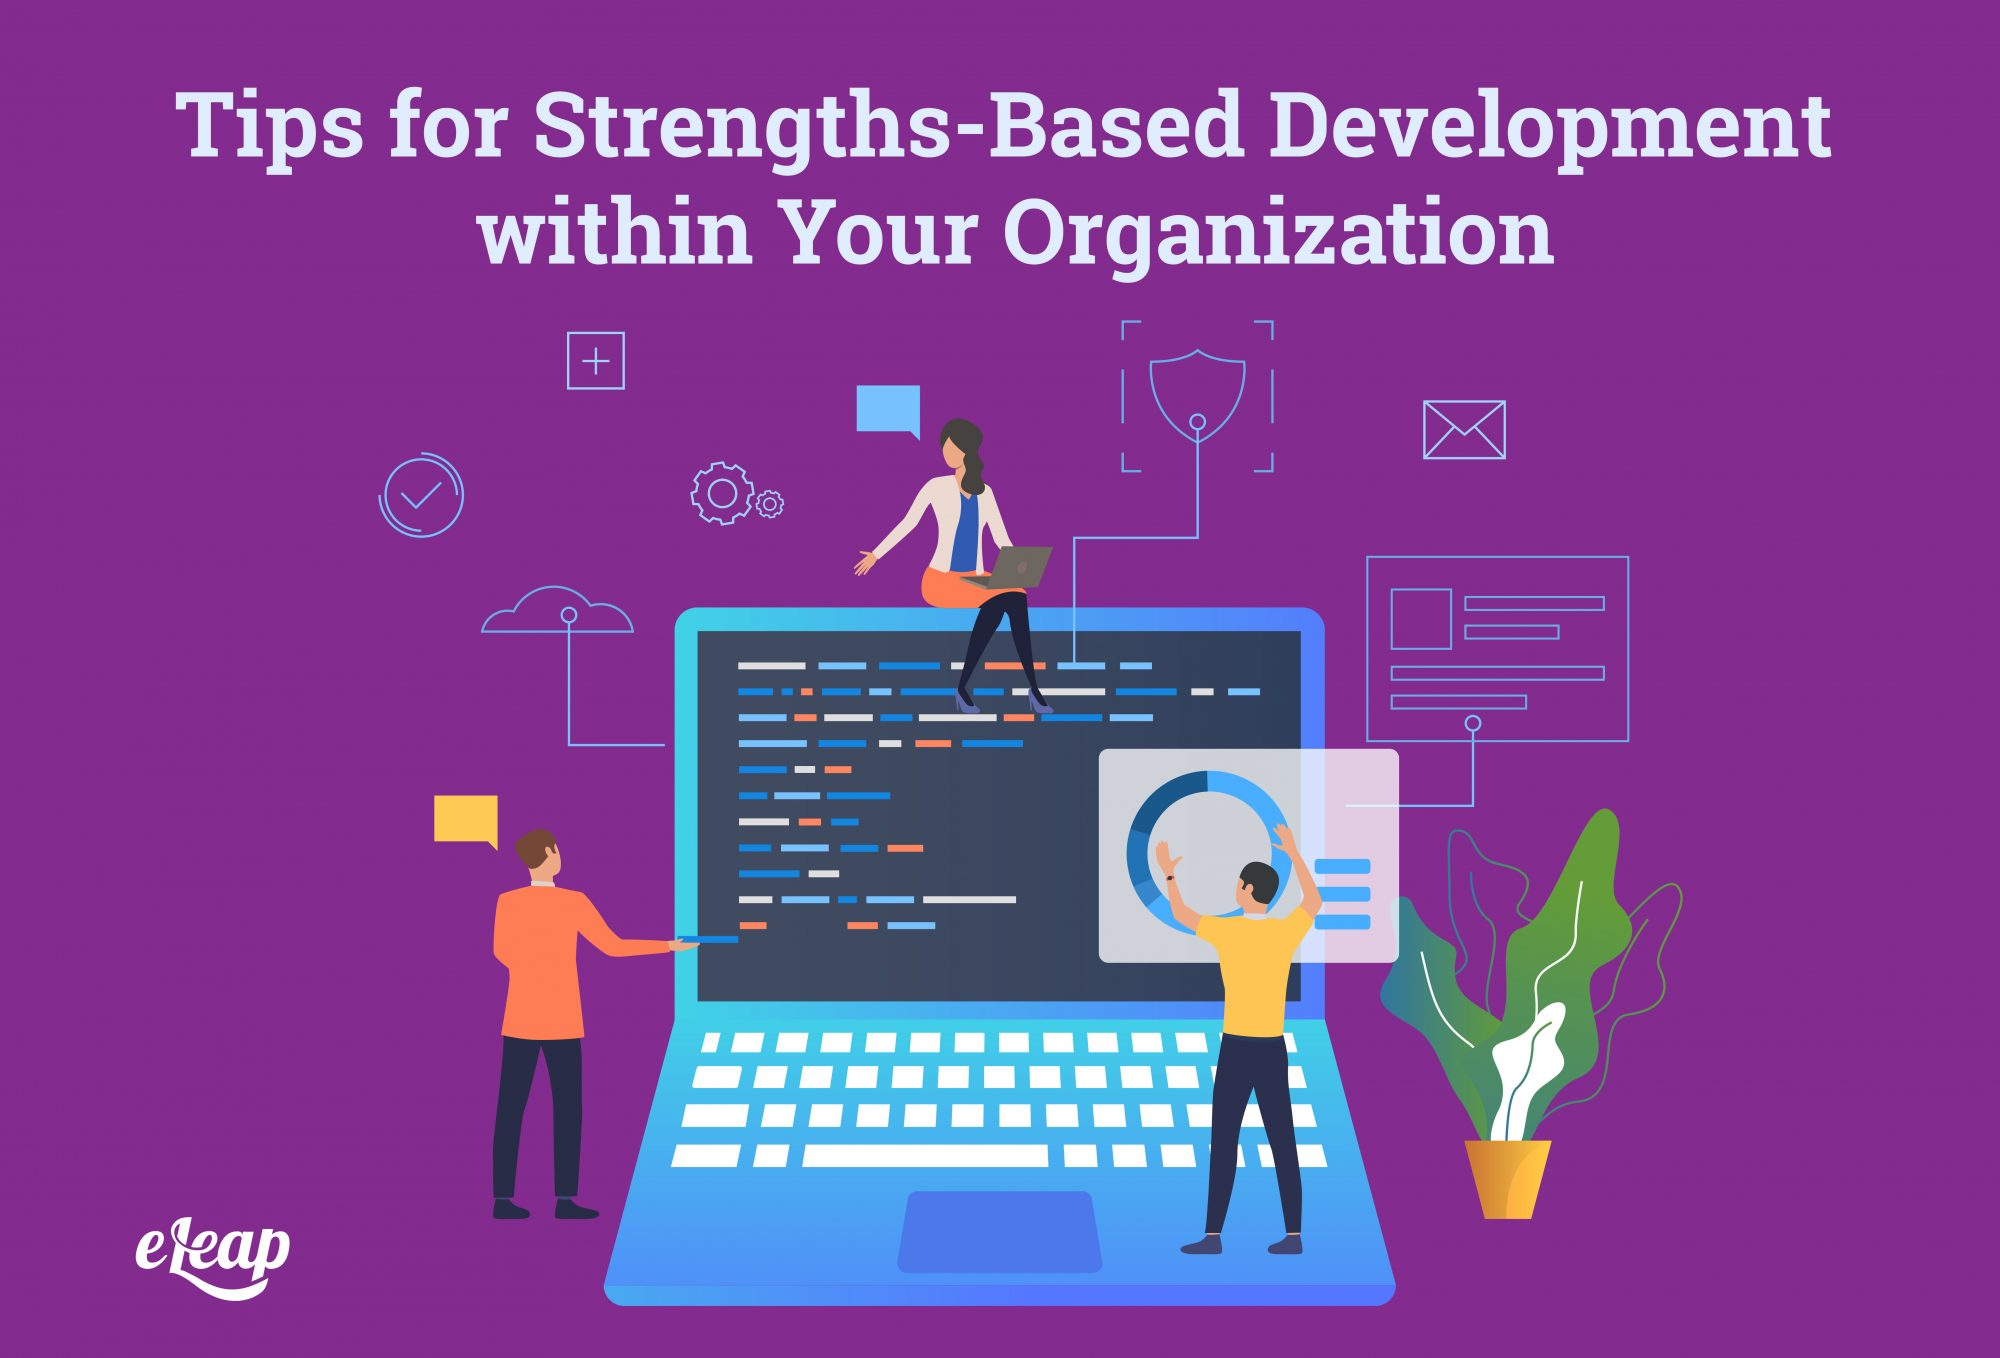 Tips for Strengths-Based Development within Your Organization